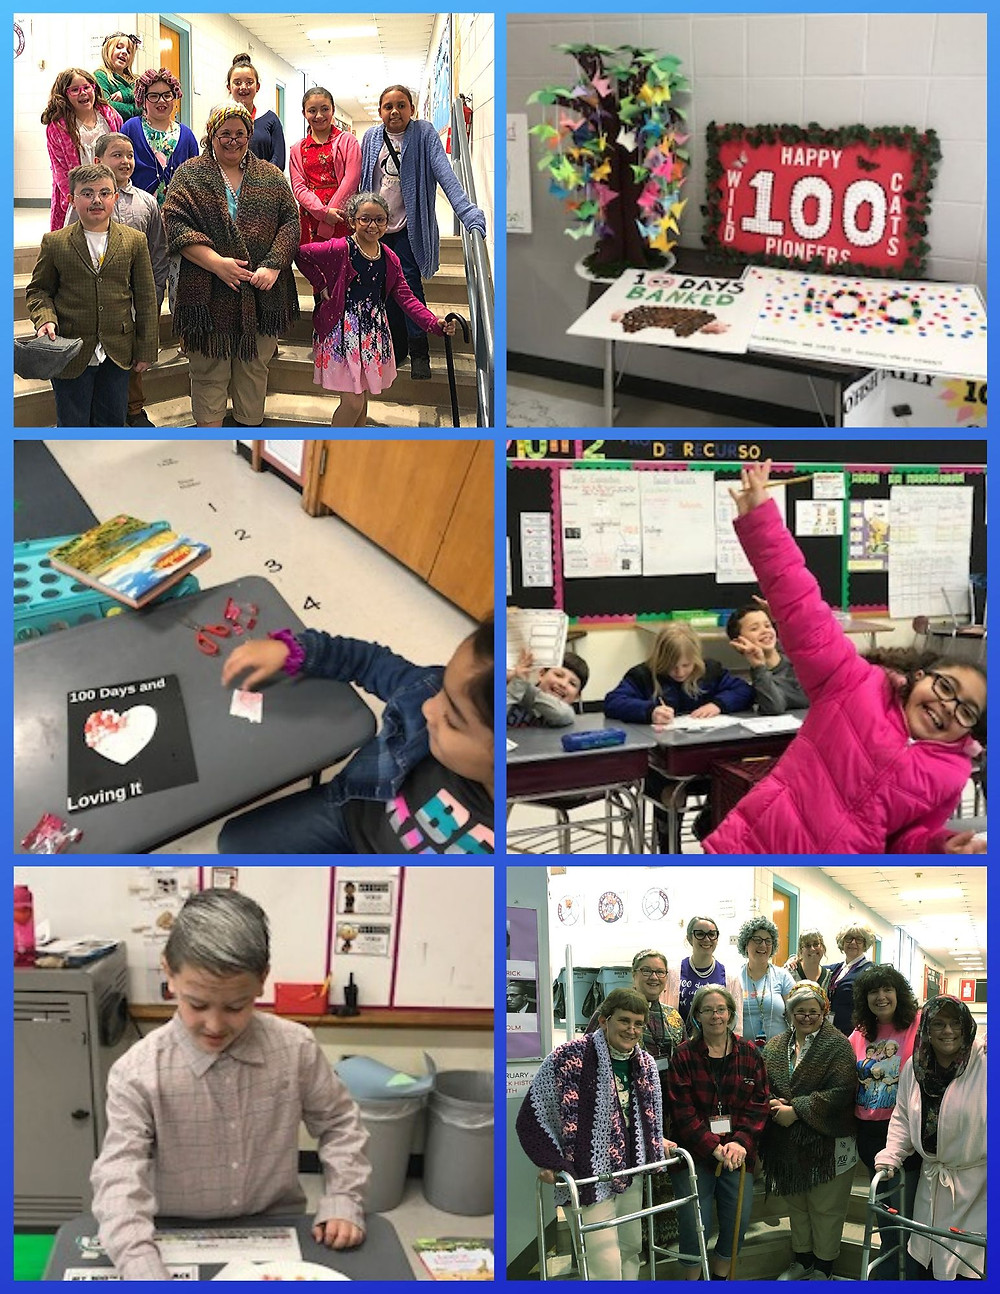 Photos in a grid of 100th Day celebrations at West Street School